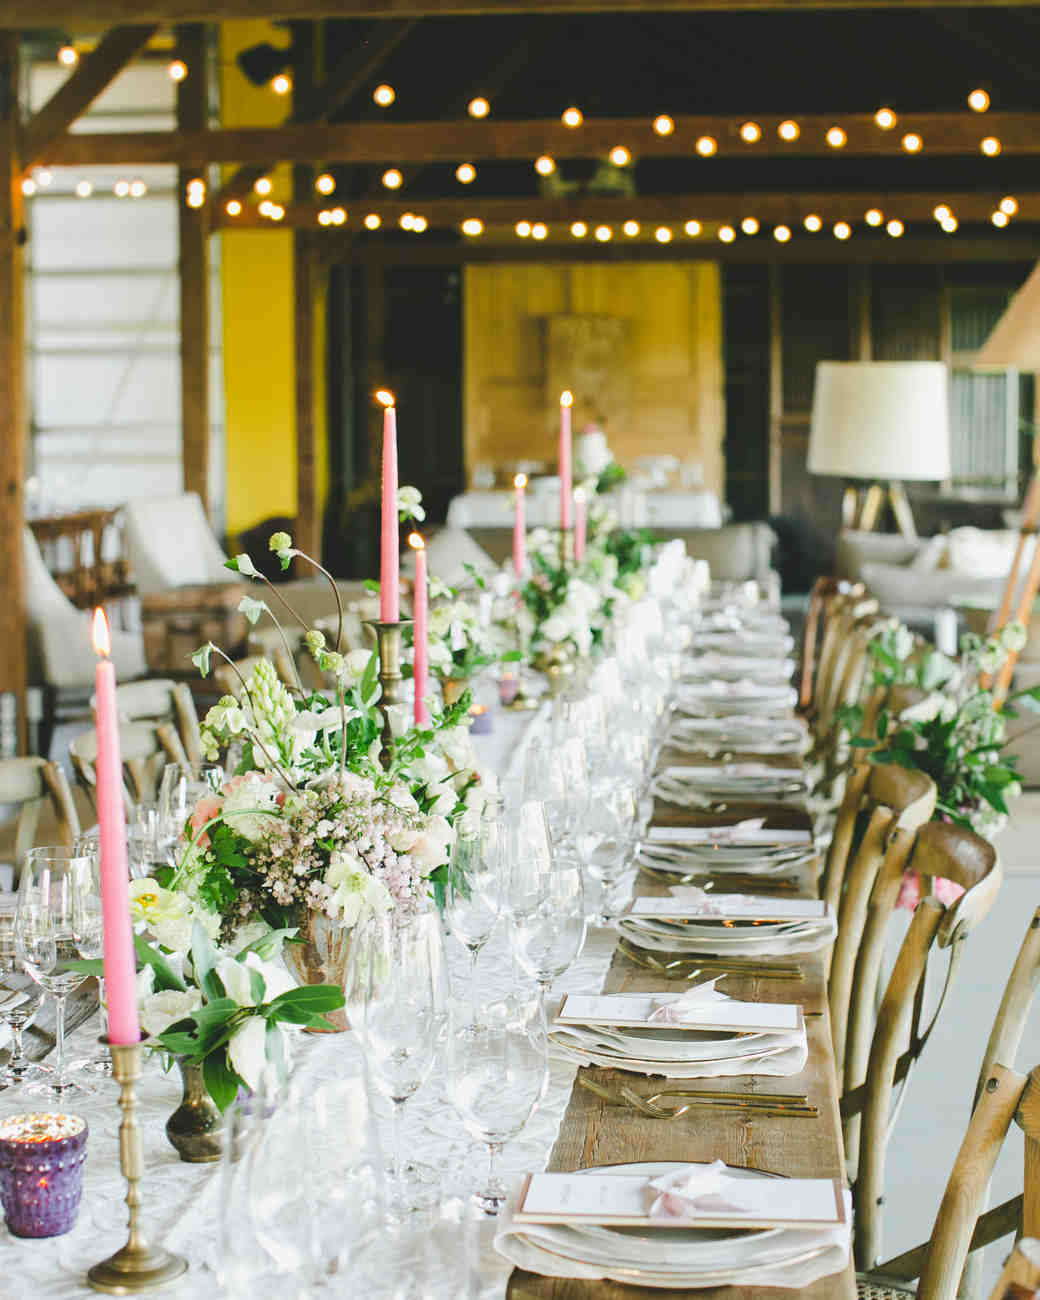 Spring Wedding Centerpiece Ideas: 23 Candle Centerpieces That Will Light Up Your Reception